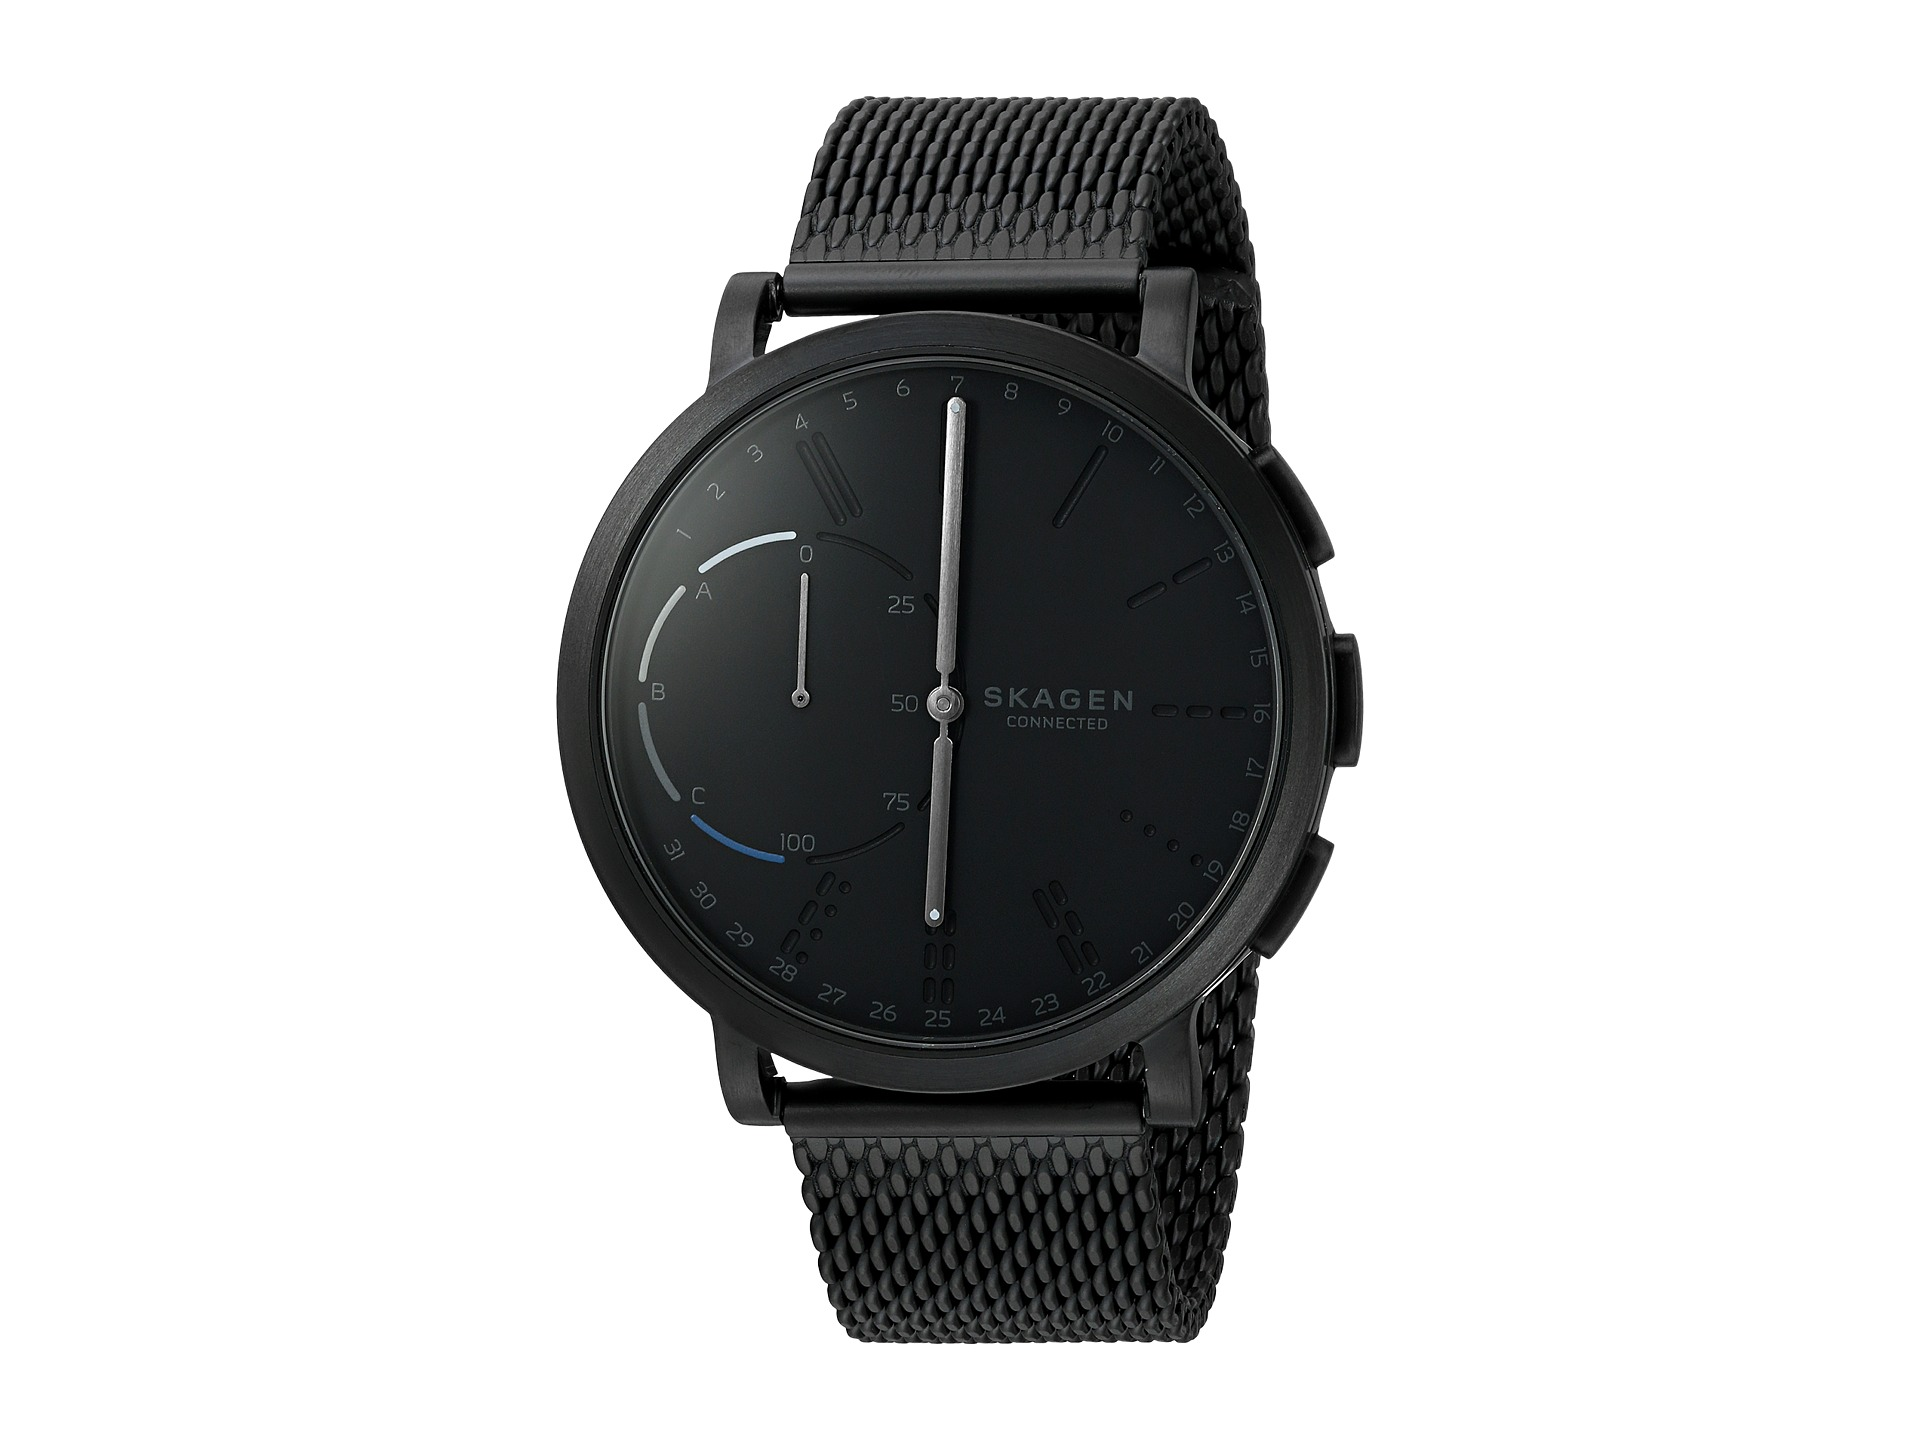 Skagen Hagen Connected Hybrid Smartwatch